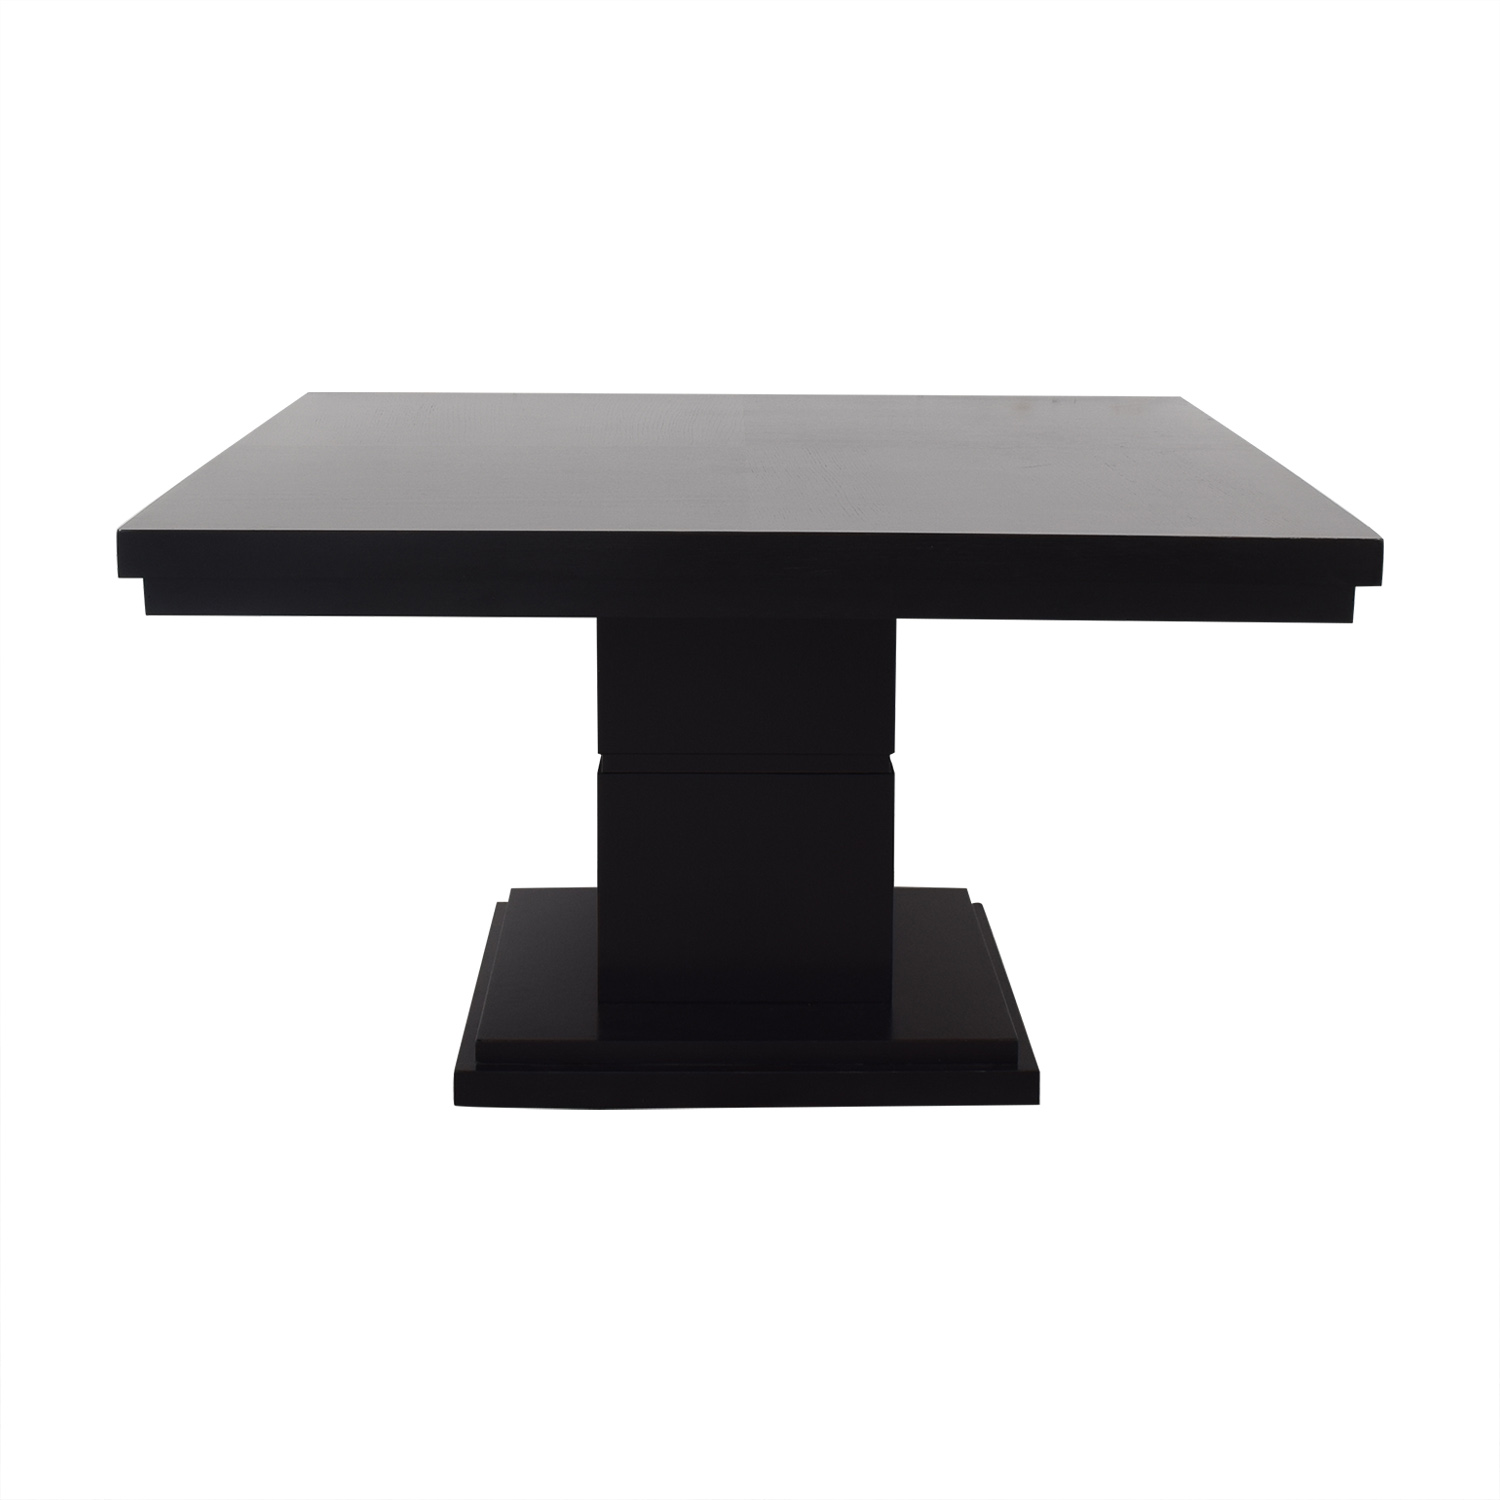 Calmart International Calmart International Dining Table used